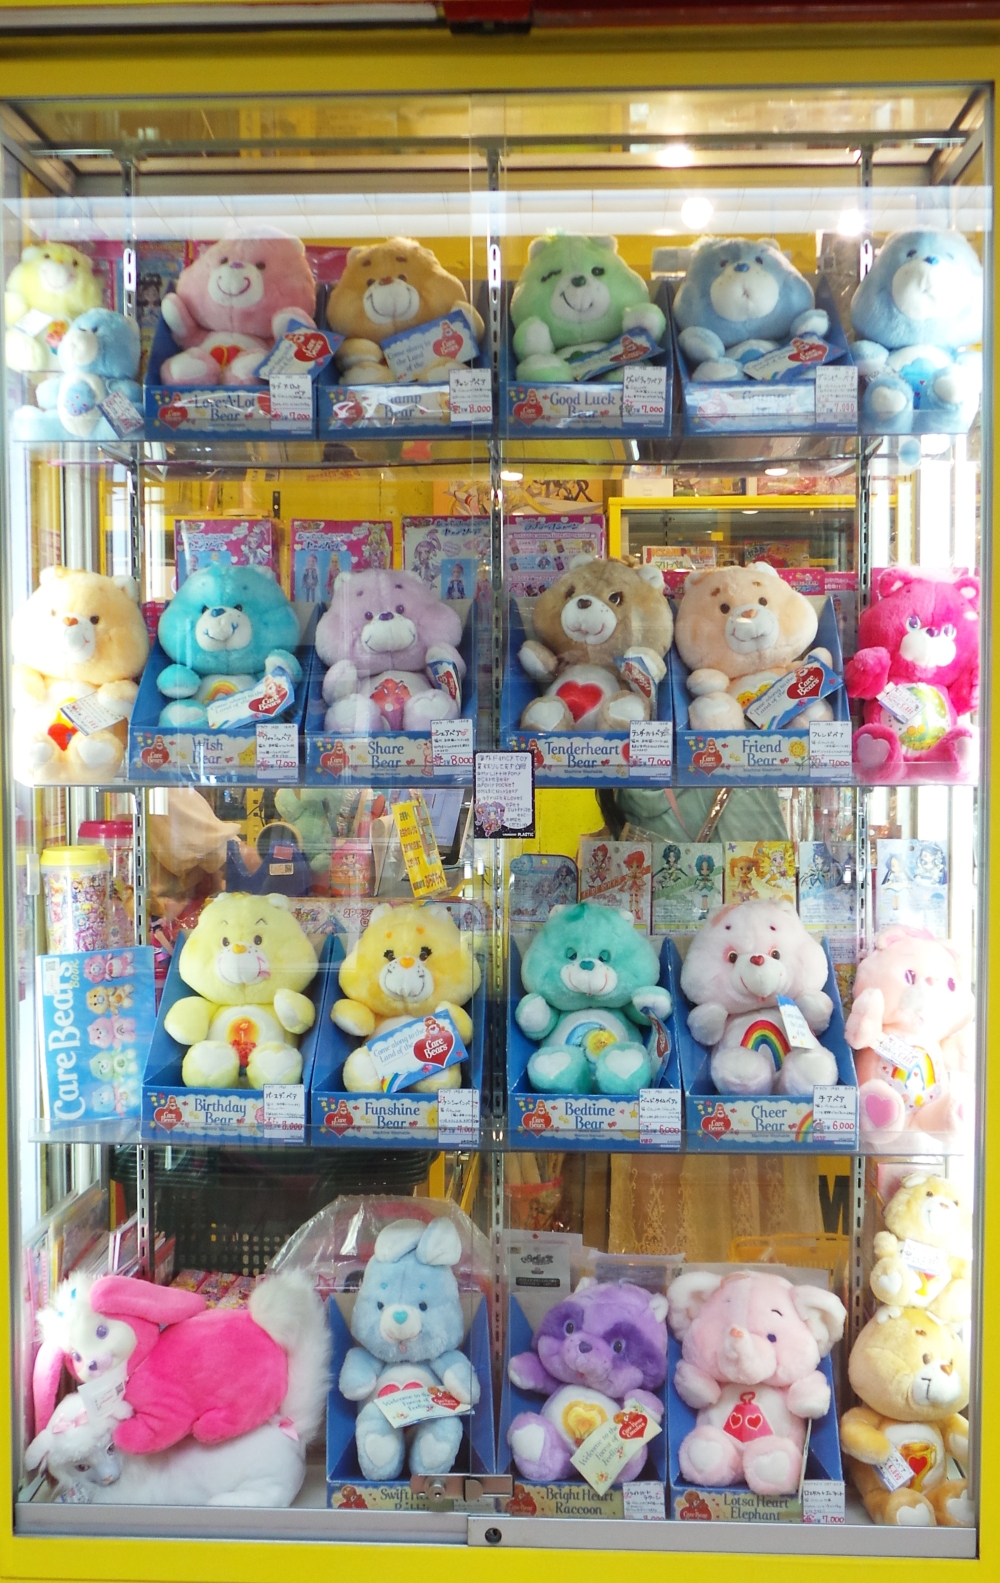 Jouets de collection à Nakano Broadway, un centre commercial insolite